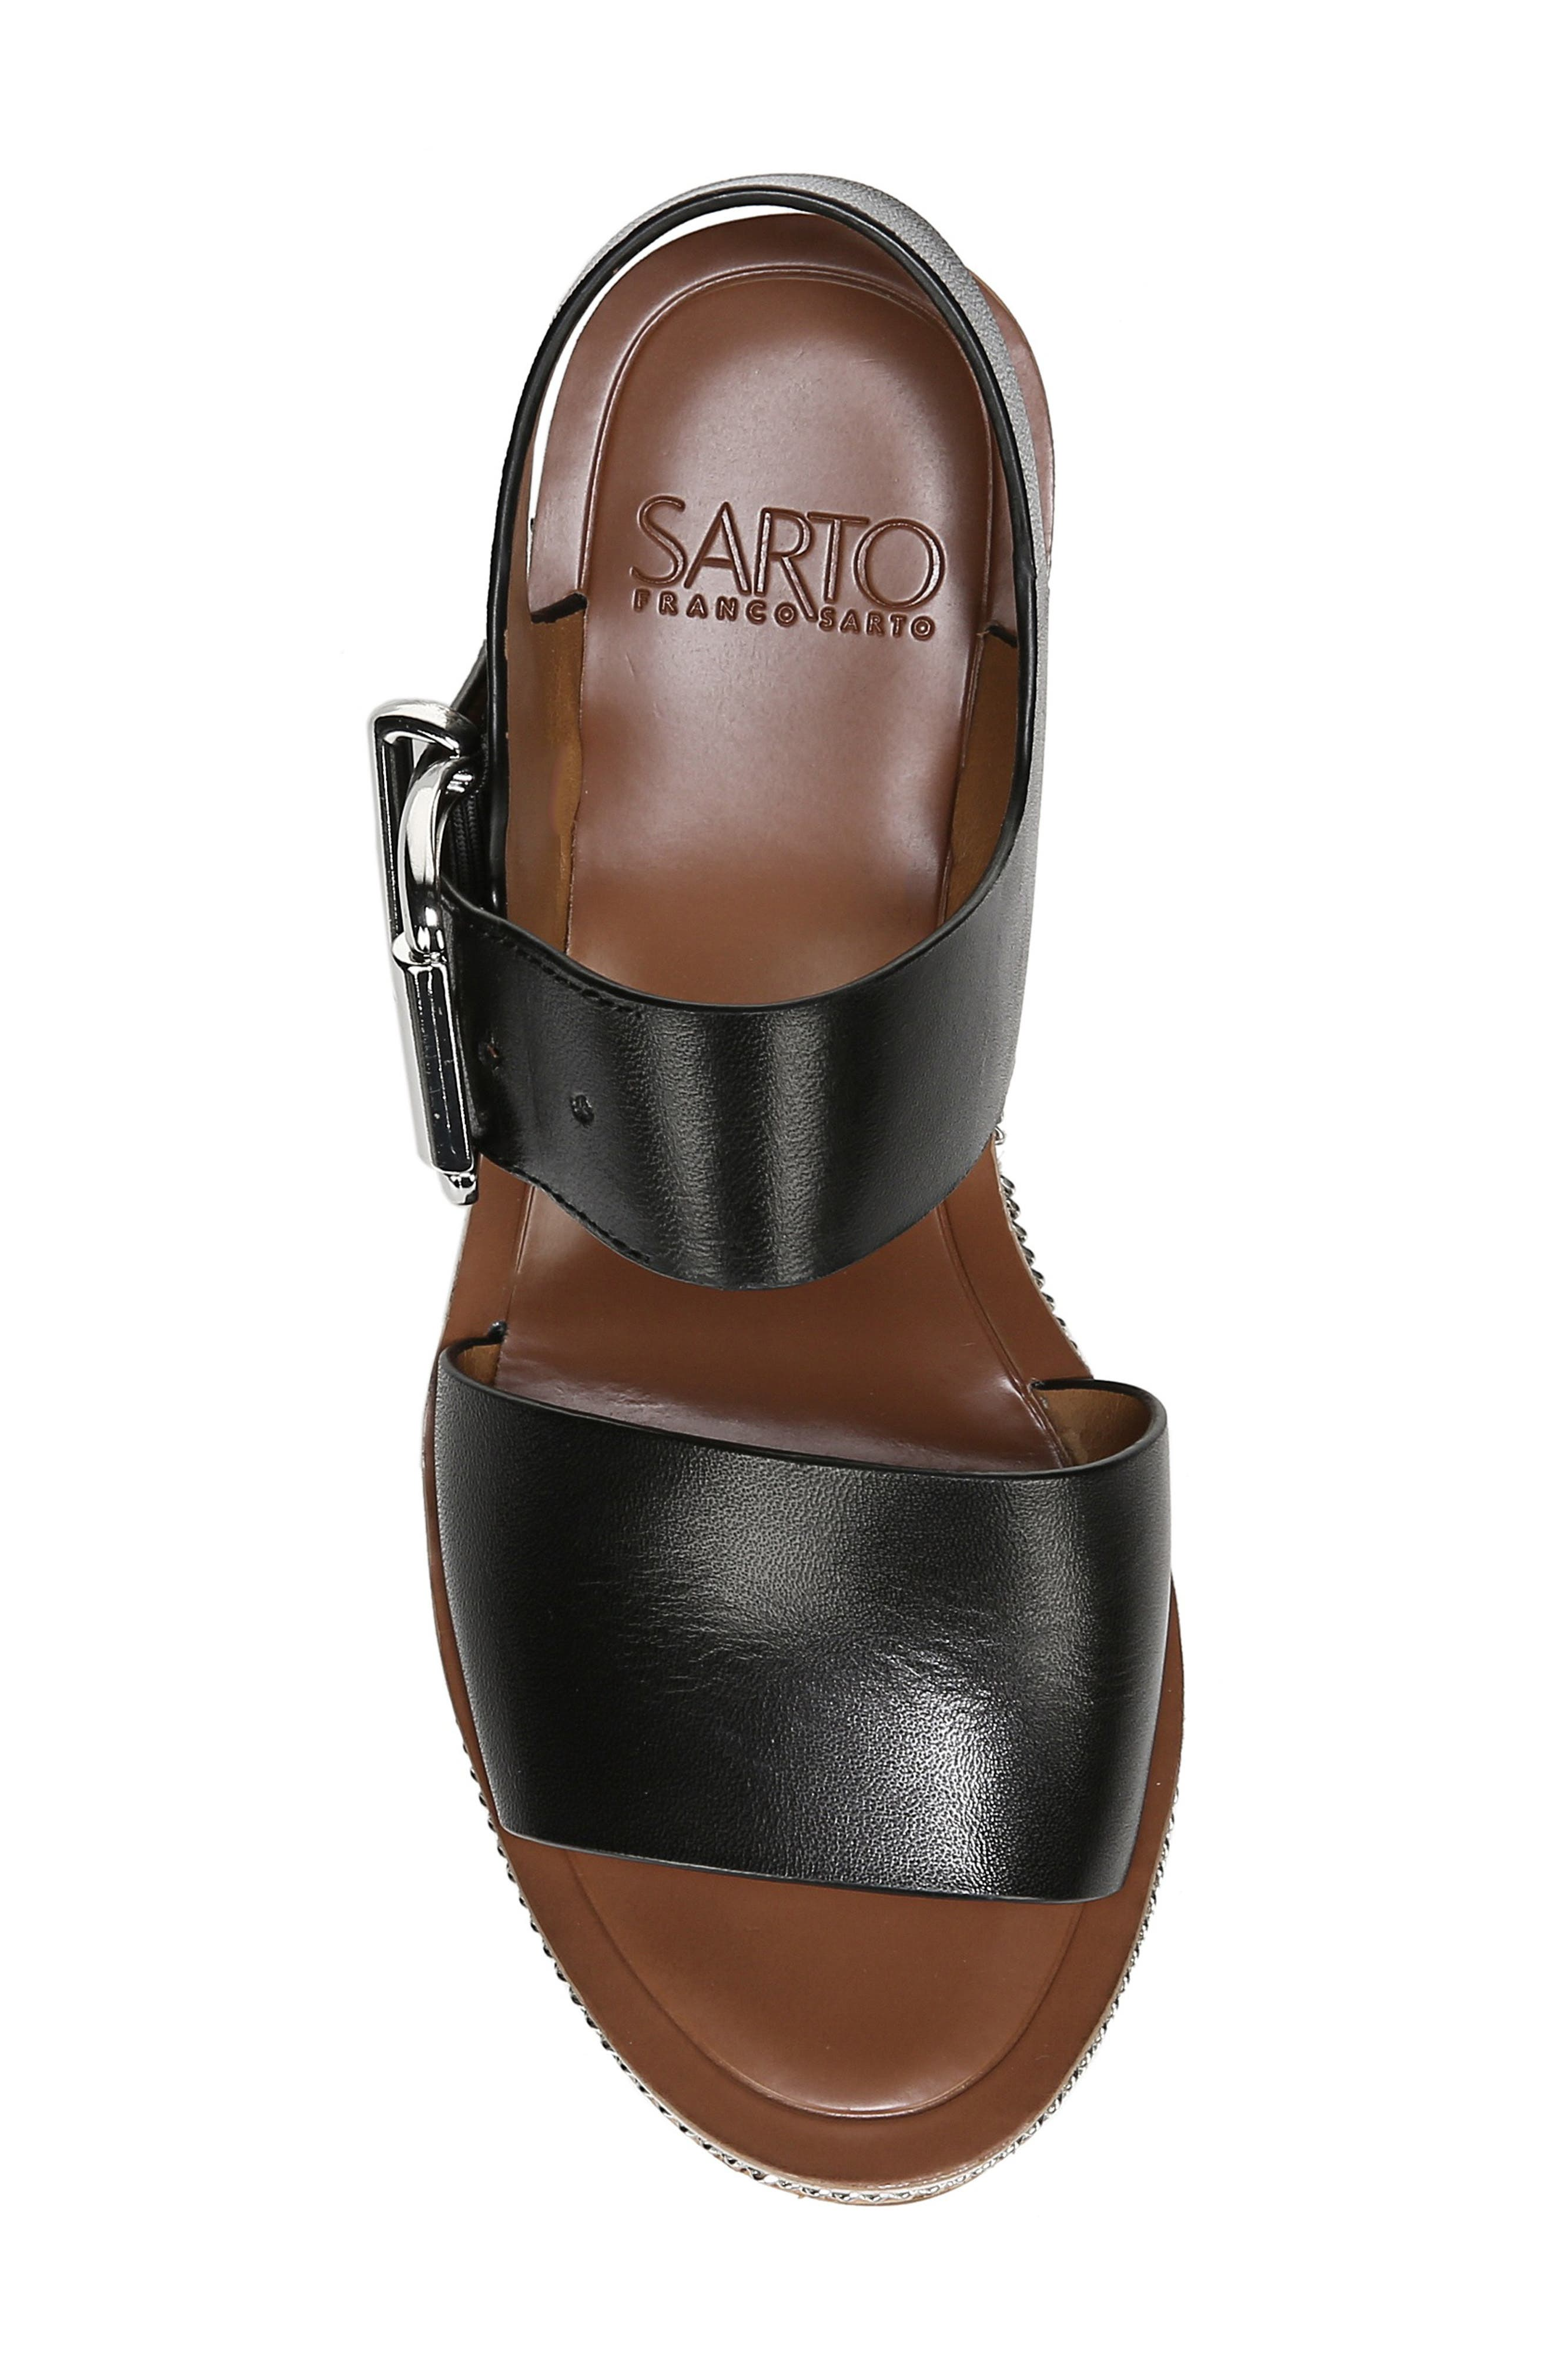 SARTO BY FRANCO SARTO, Polly Wedge Slingback Sandal, Alternate thumbnail 5, color, BLACK LEATHER